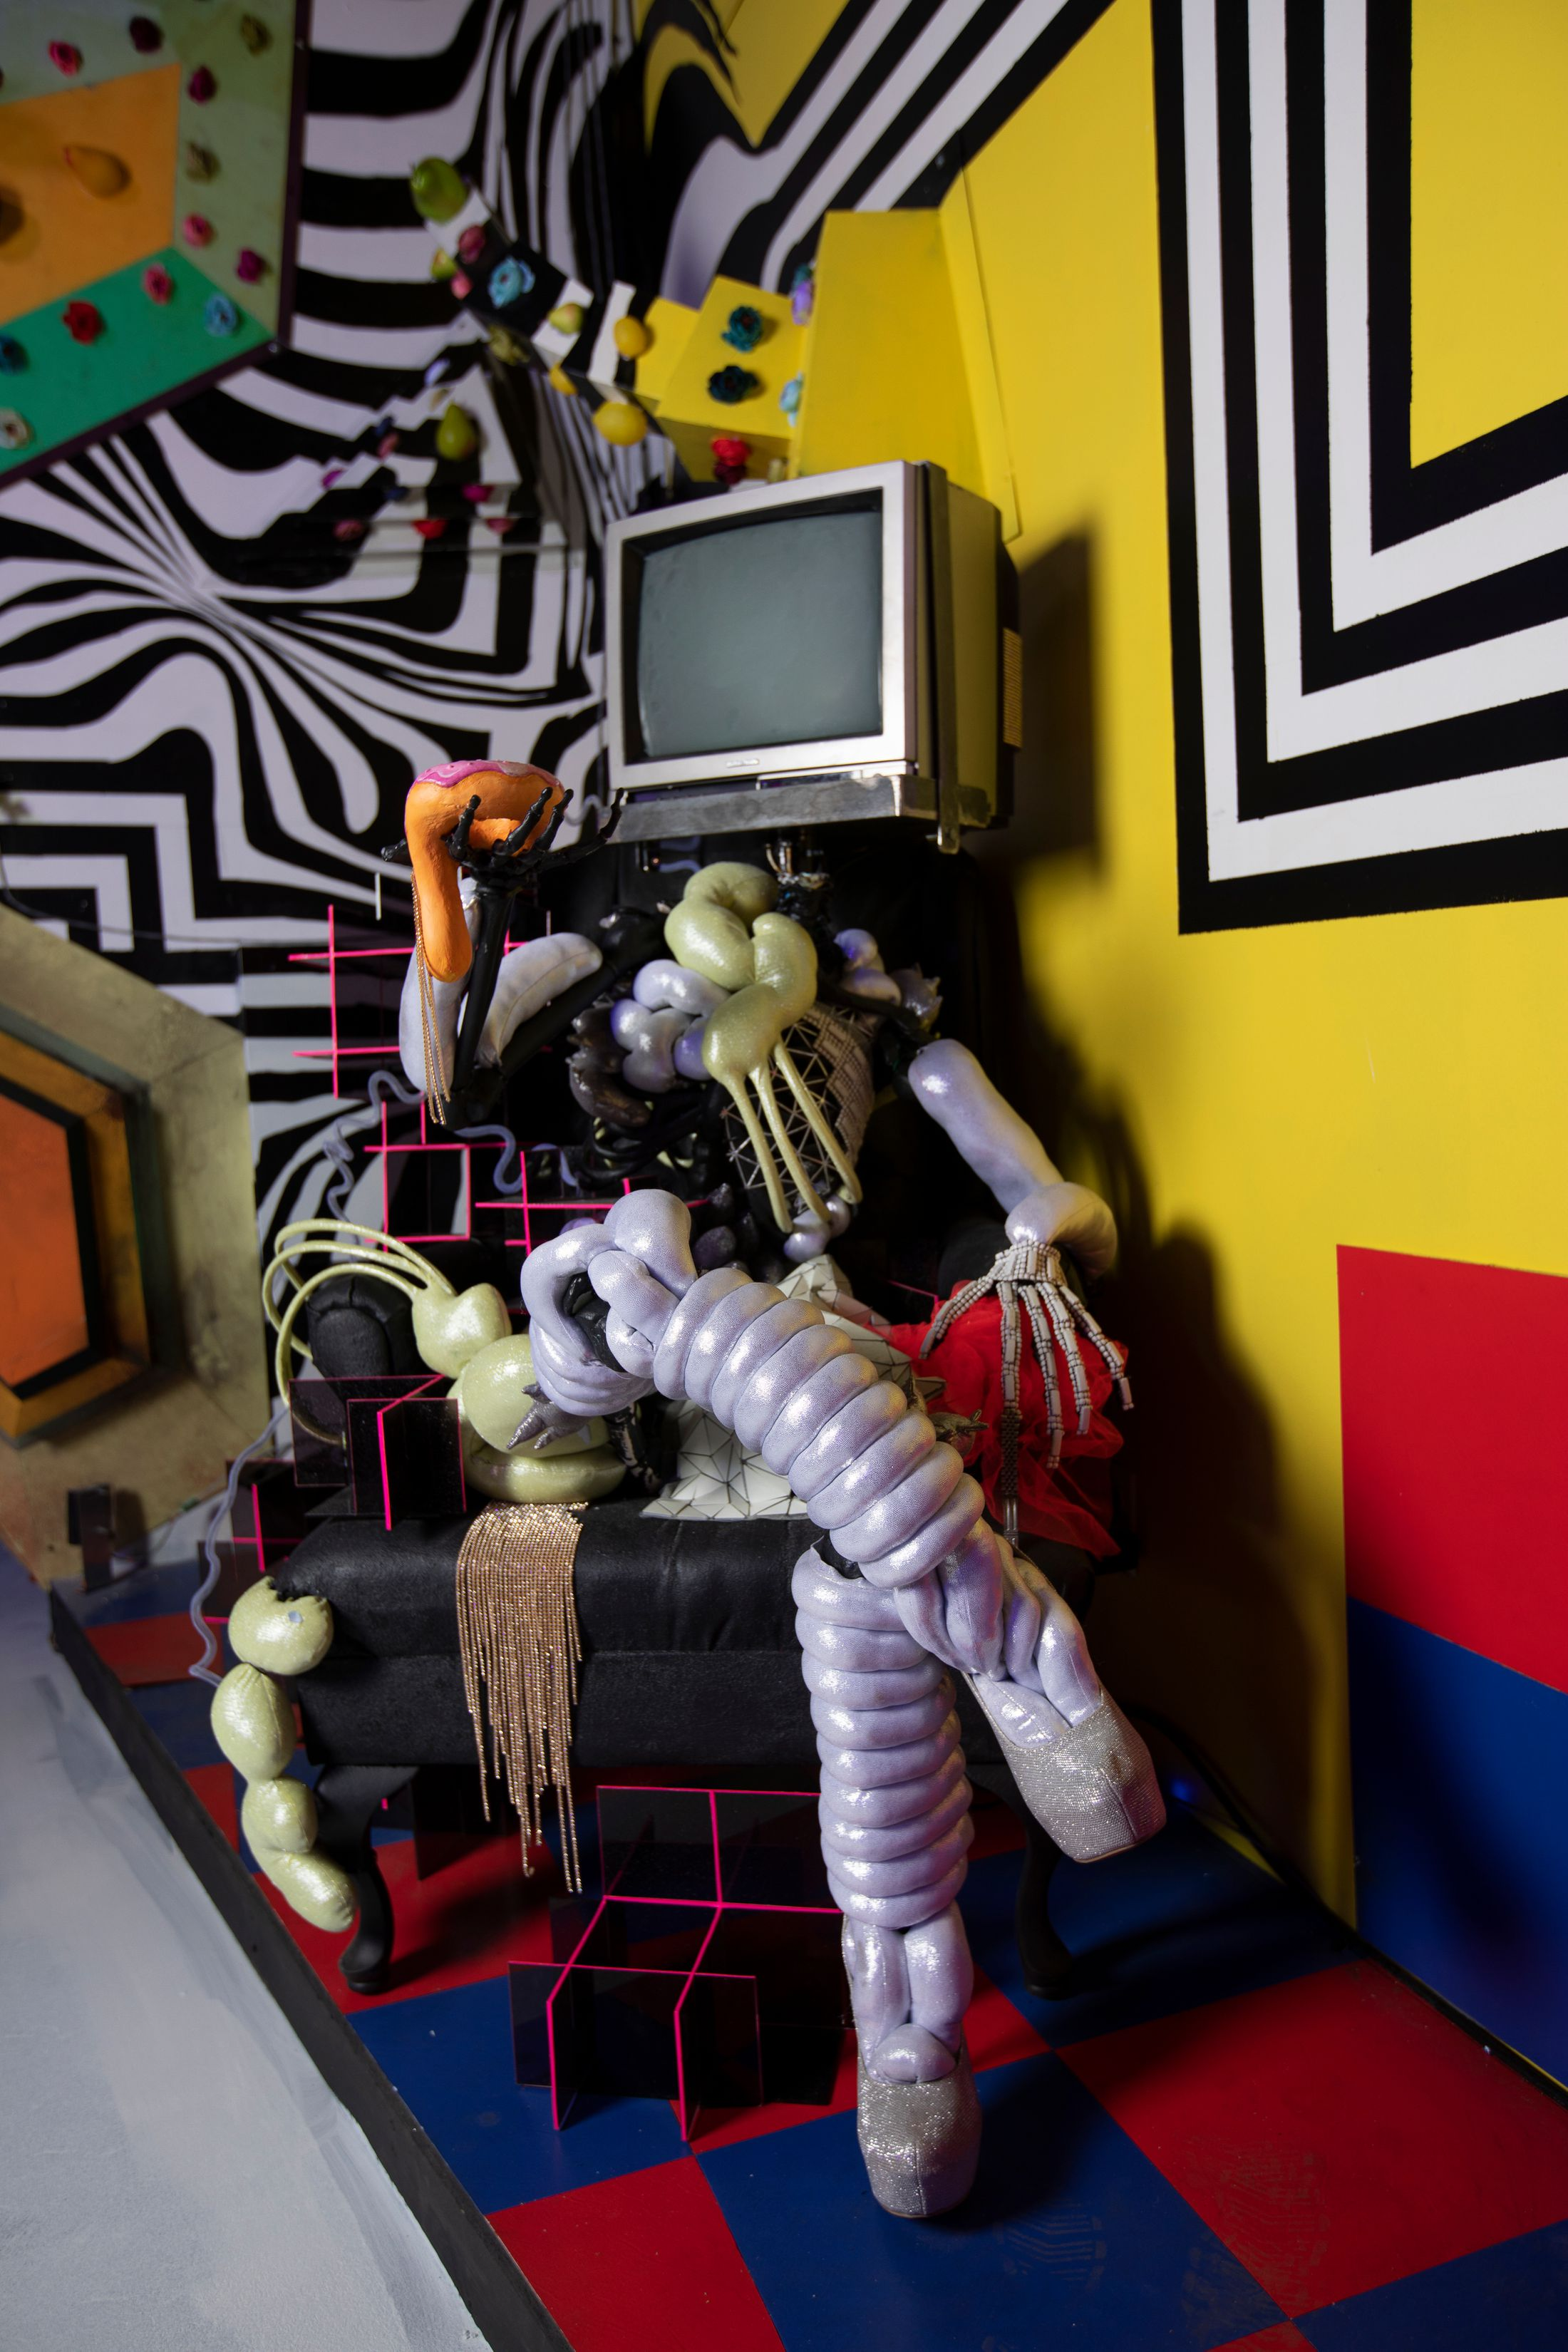 A TV being held up by various items that resemble parts of a body, with the TV in place of the head